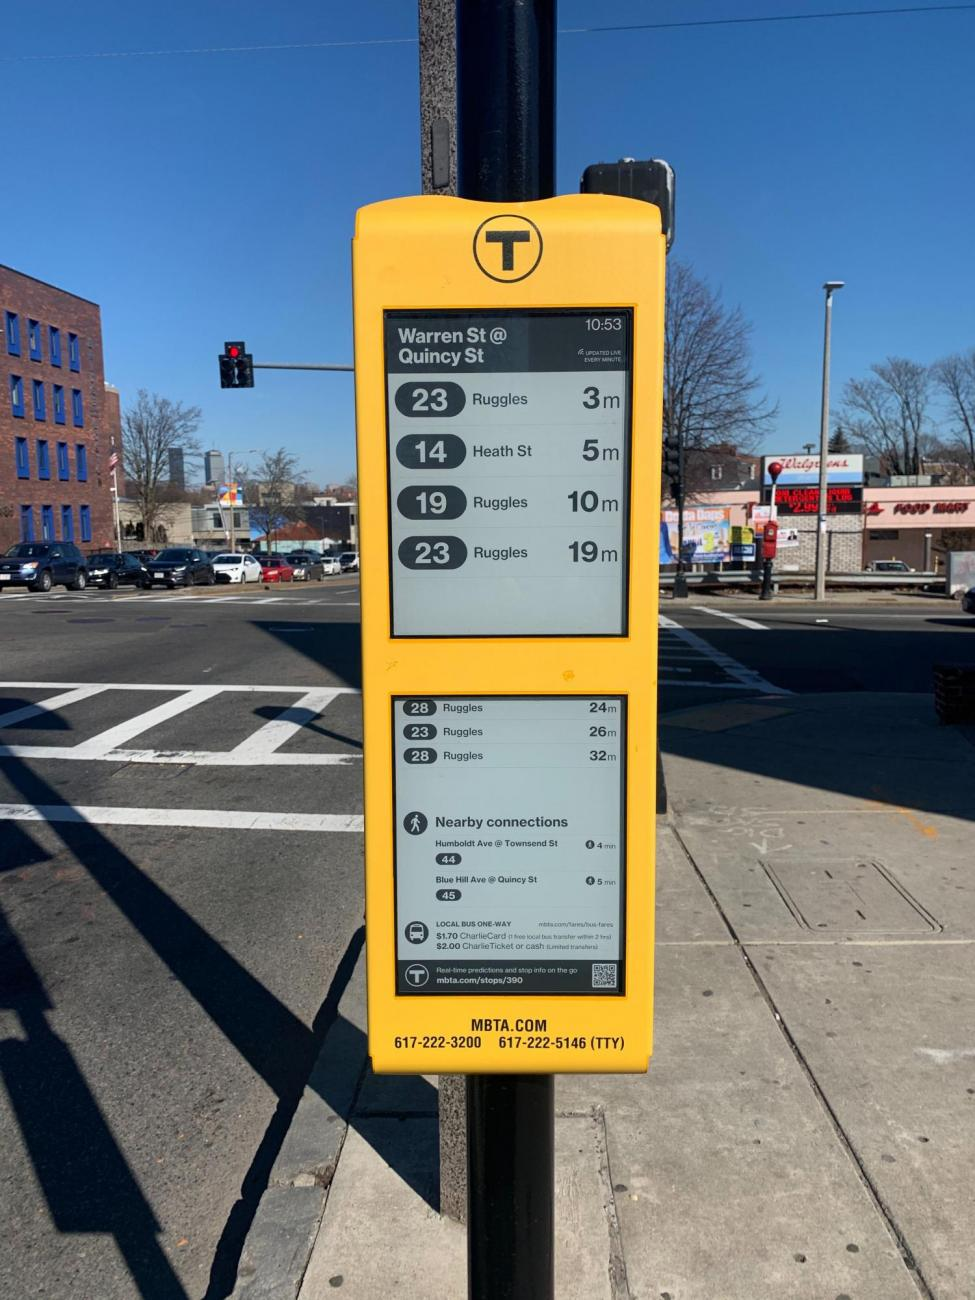 A close up of an E Ink sign at the Warren St @ Quincy St stop in Roxbury (February 2020)